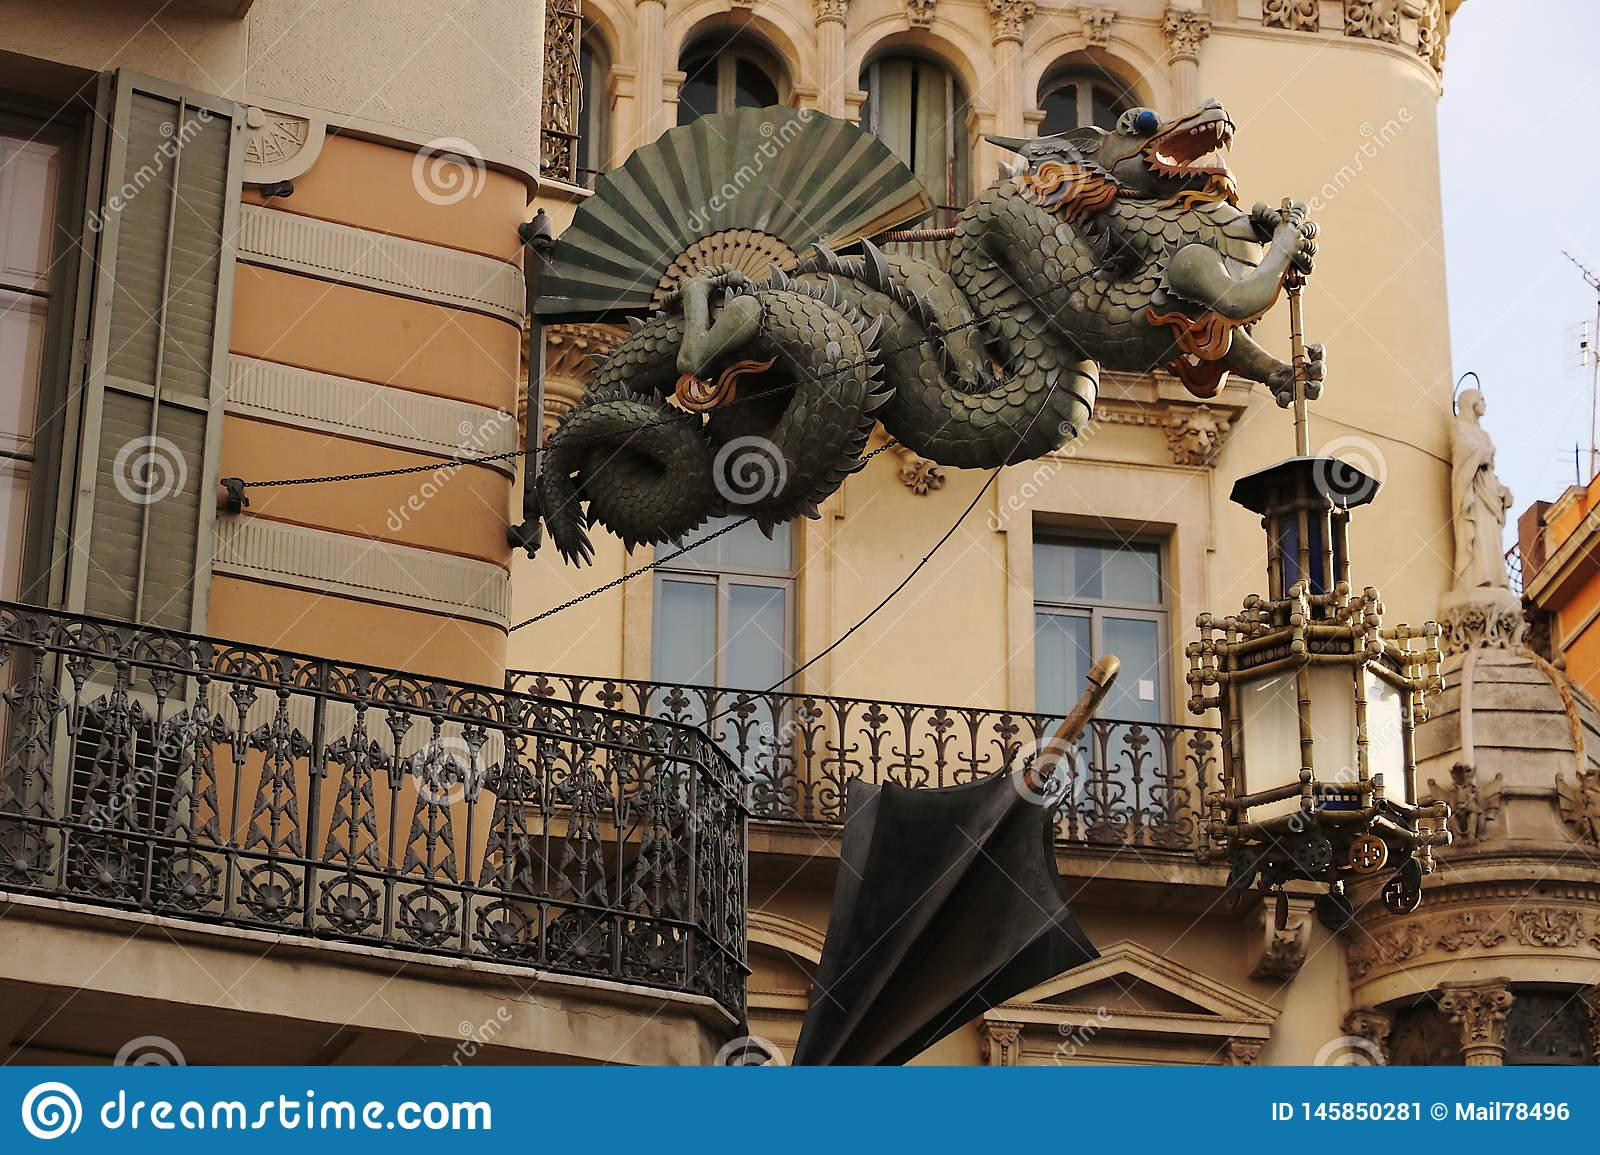 Sculpture of the dragon to decorate the facade of a building in Barcelona